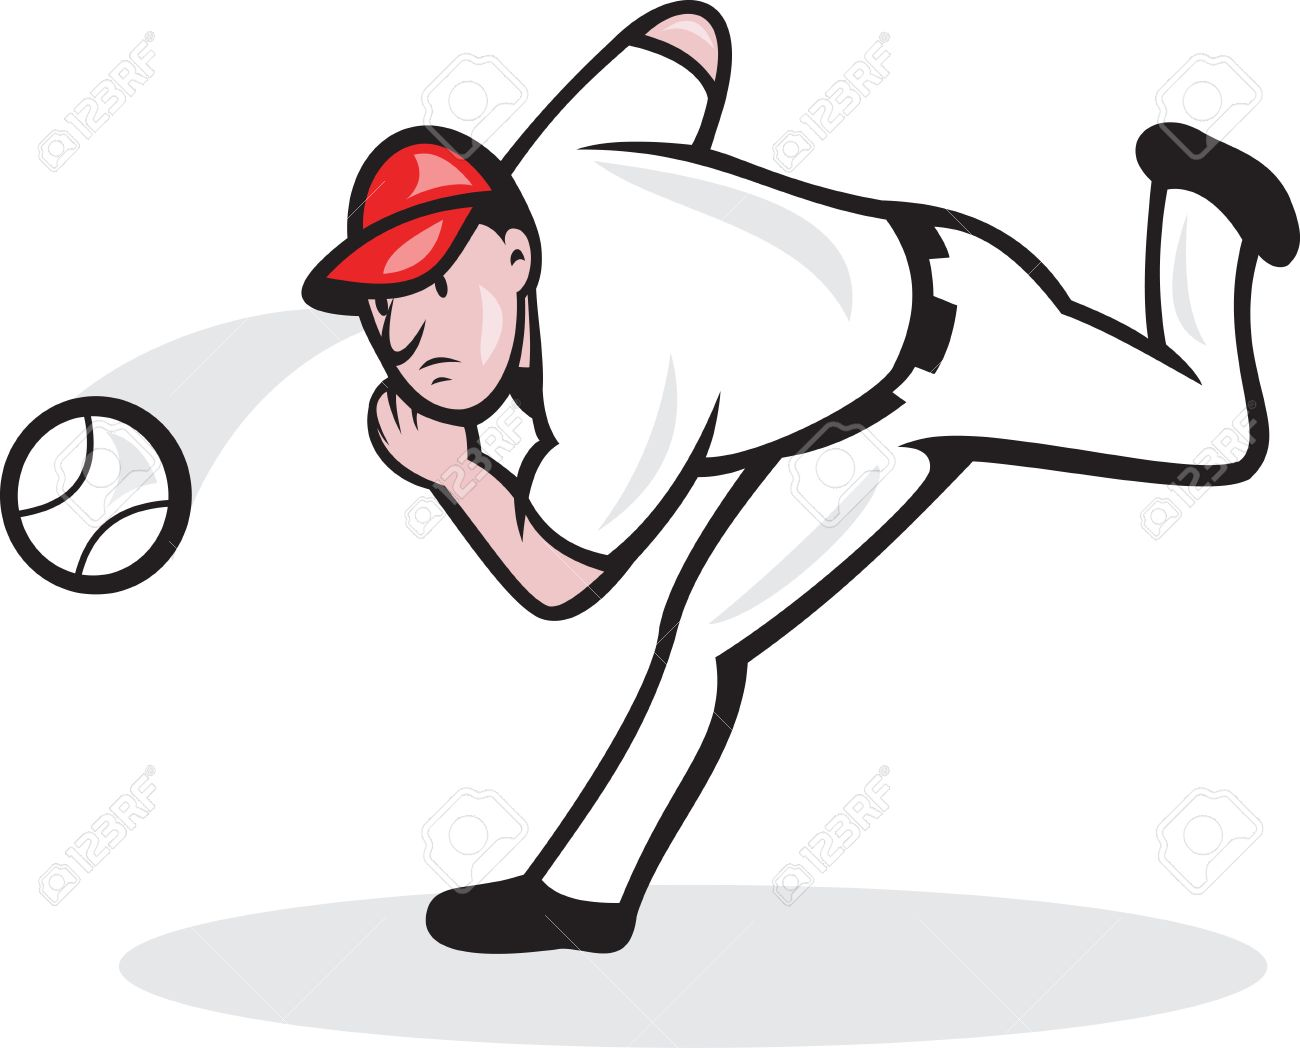 Baseball pitching clipart.